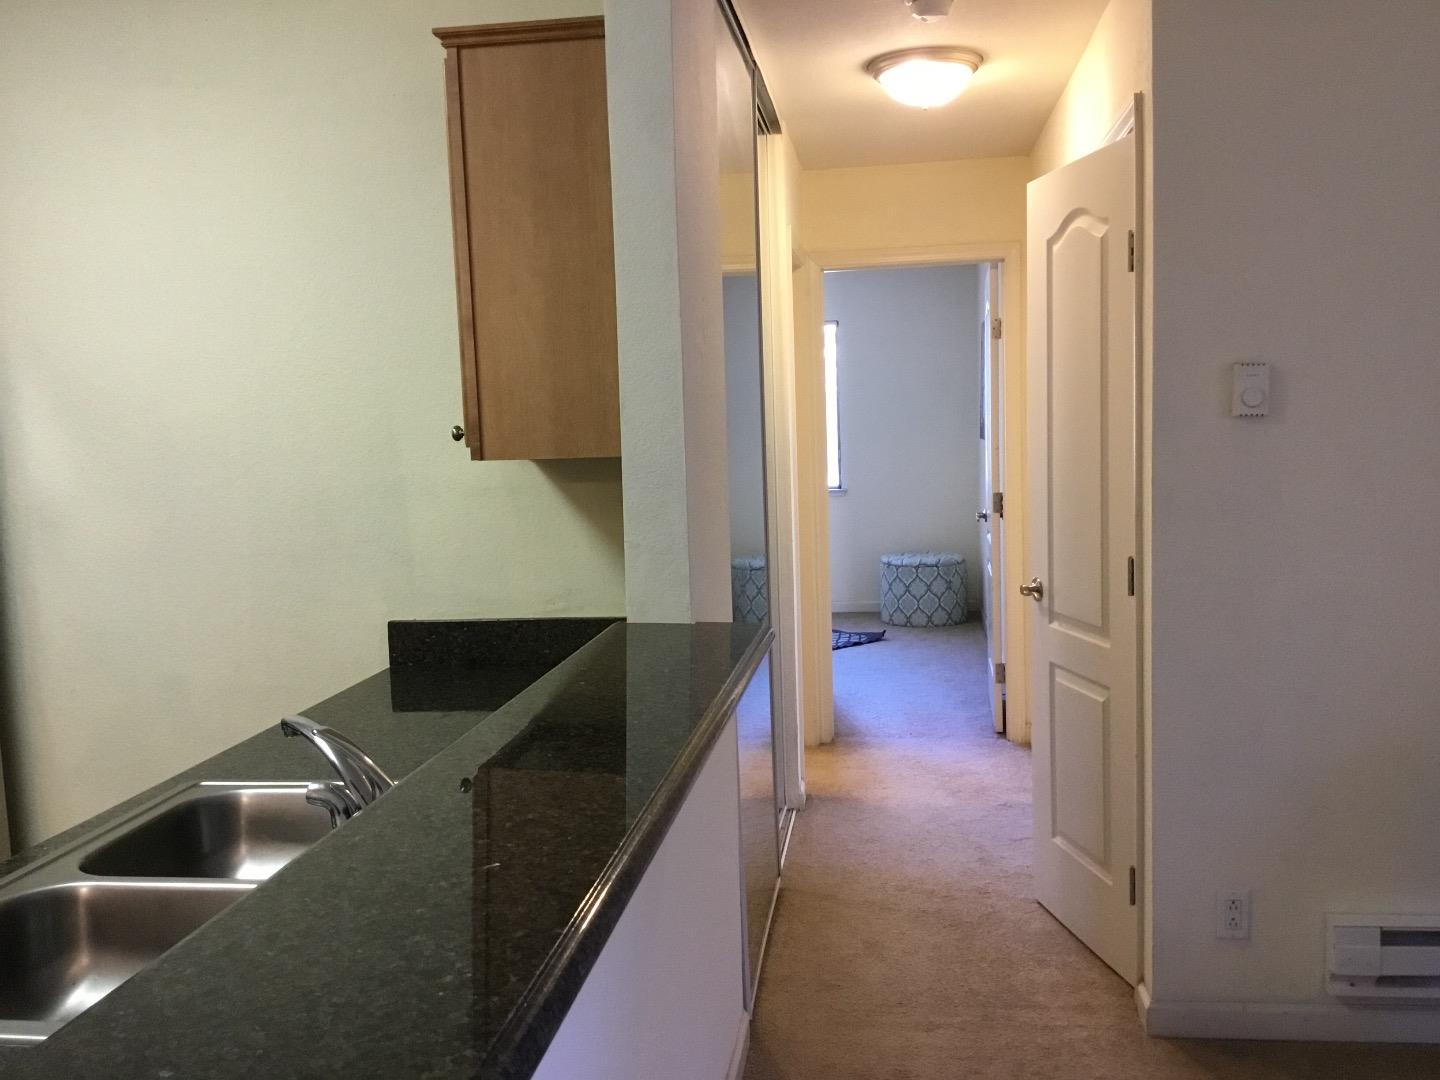 37371 Sequoia Road Fremont CA 94536 Fremont CA Bright upper end unit in the beautiful  Baywood Villas  condo complex. 2 beds/1 bath on one floor. & 37371 Sequoia Road Fremont CA 94536 Fremont CA Bright upper end ...